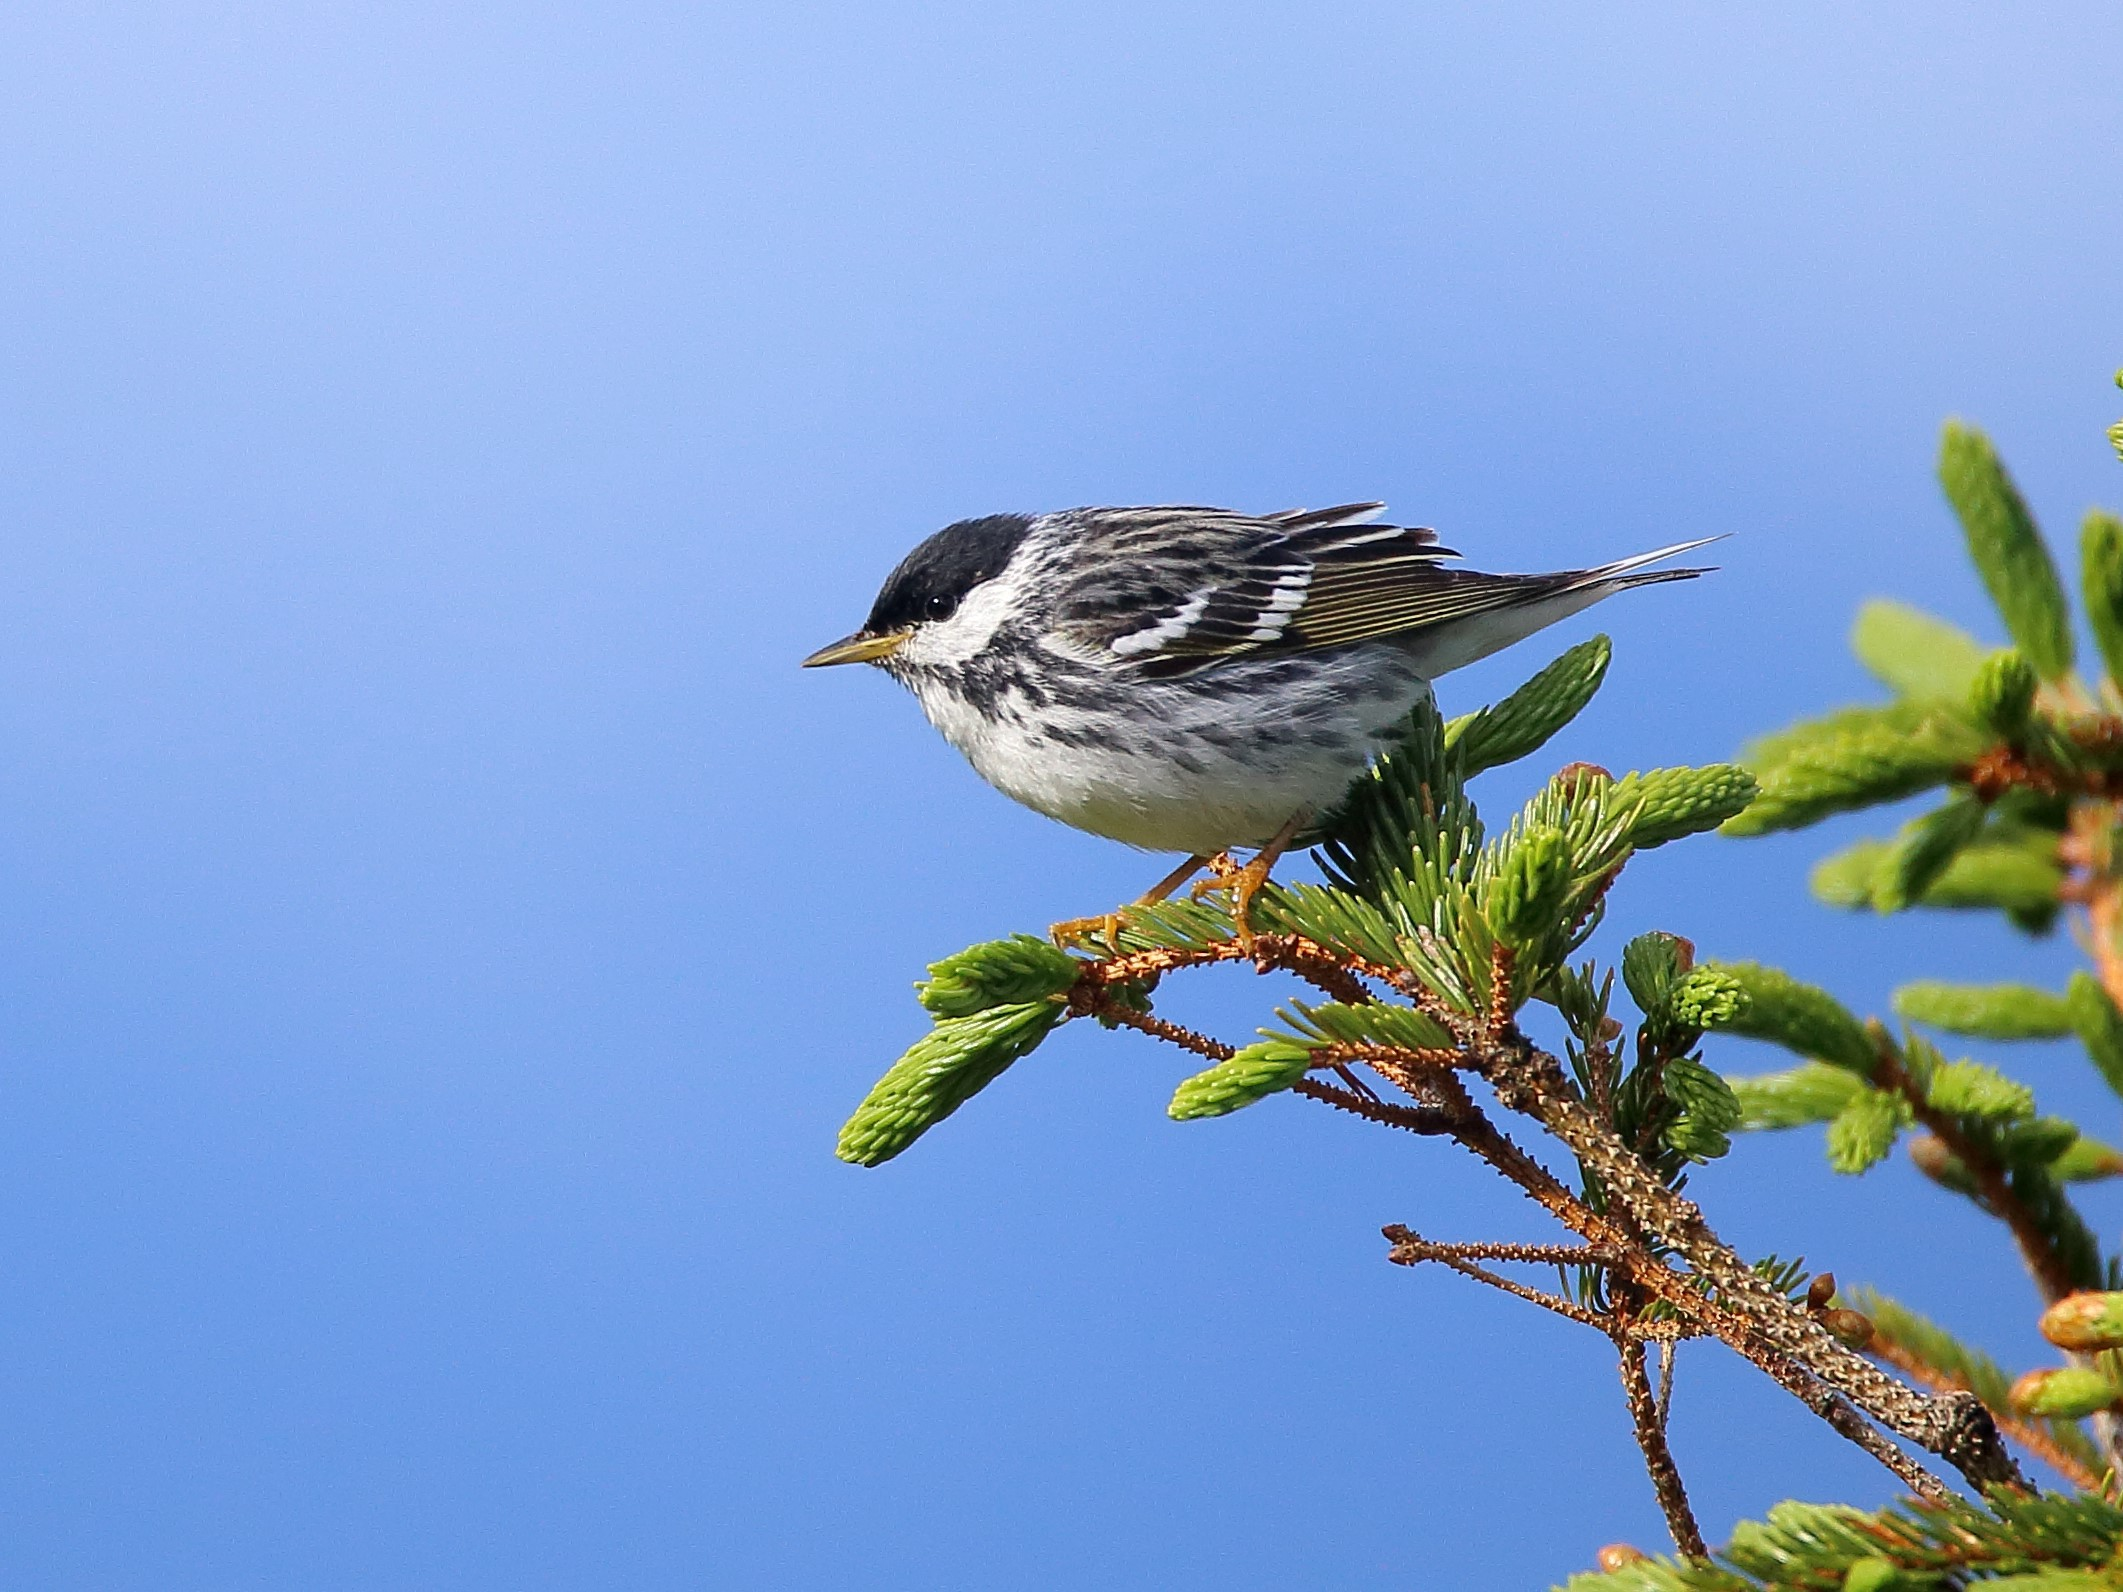 A Blackpoll warbler perches on a conifer branch